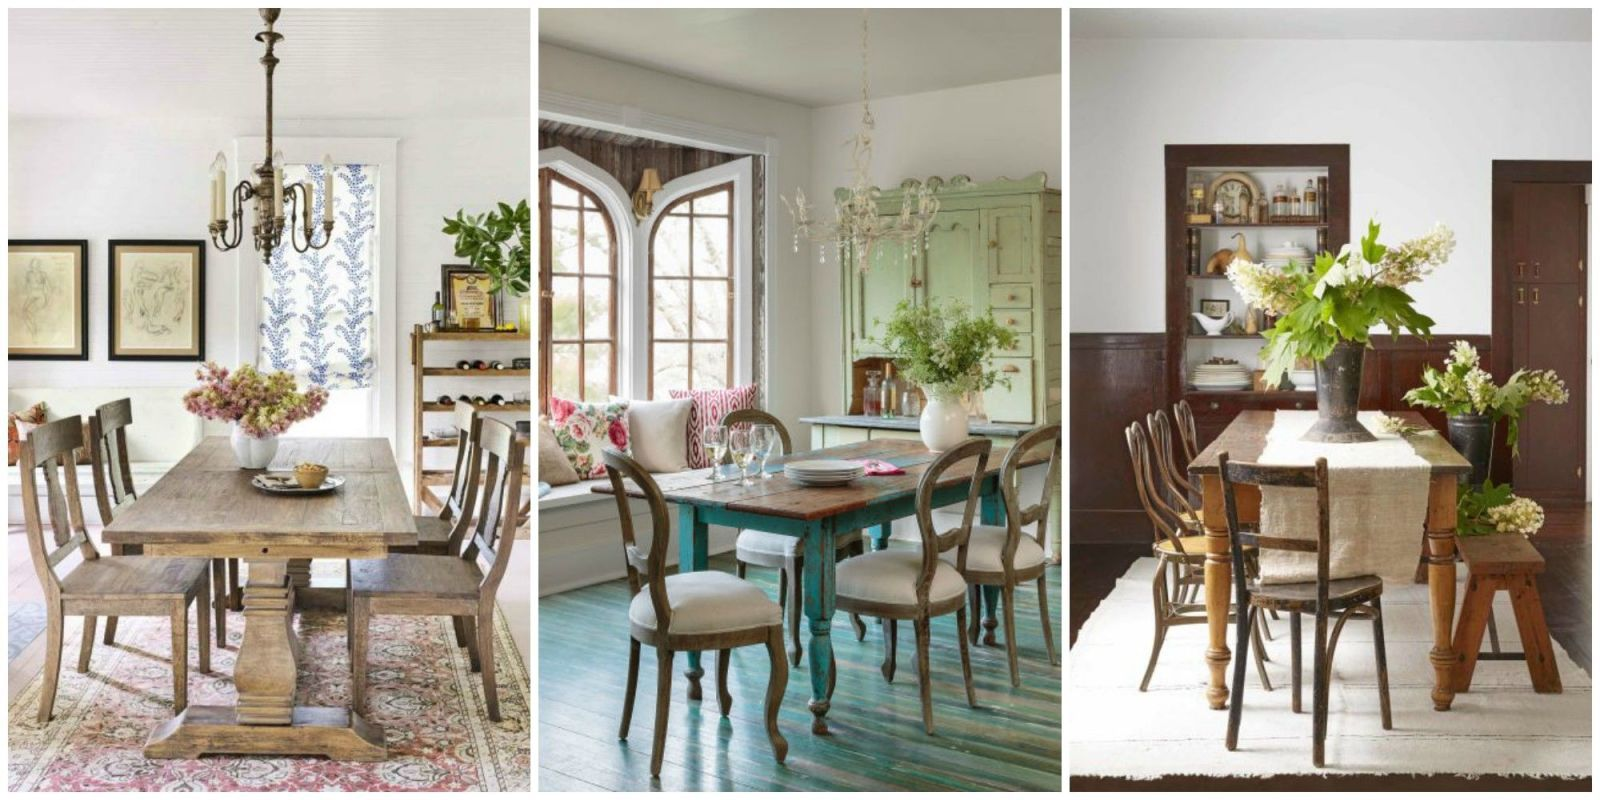 People Cant Decide Whether Rugs Belong in the Dining Room